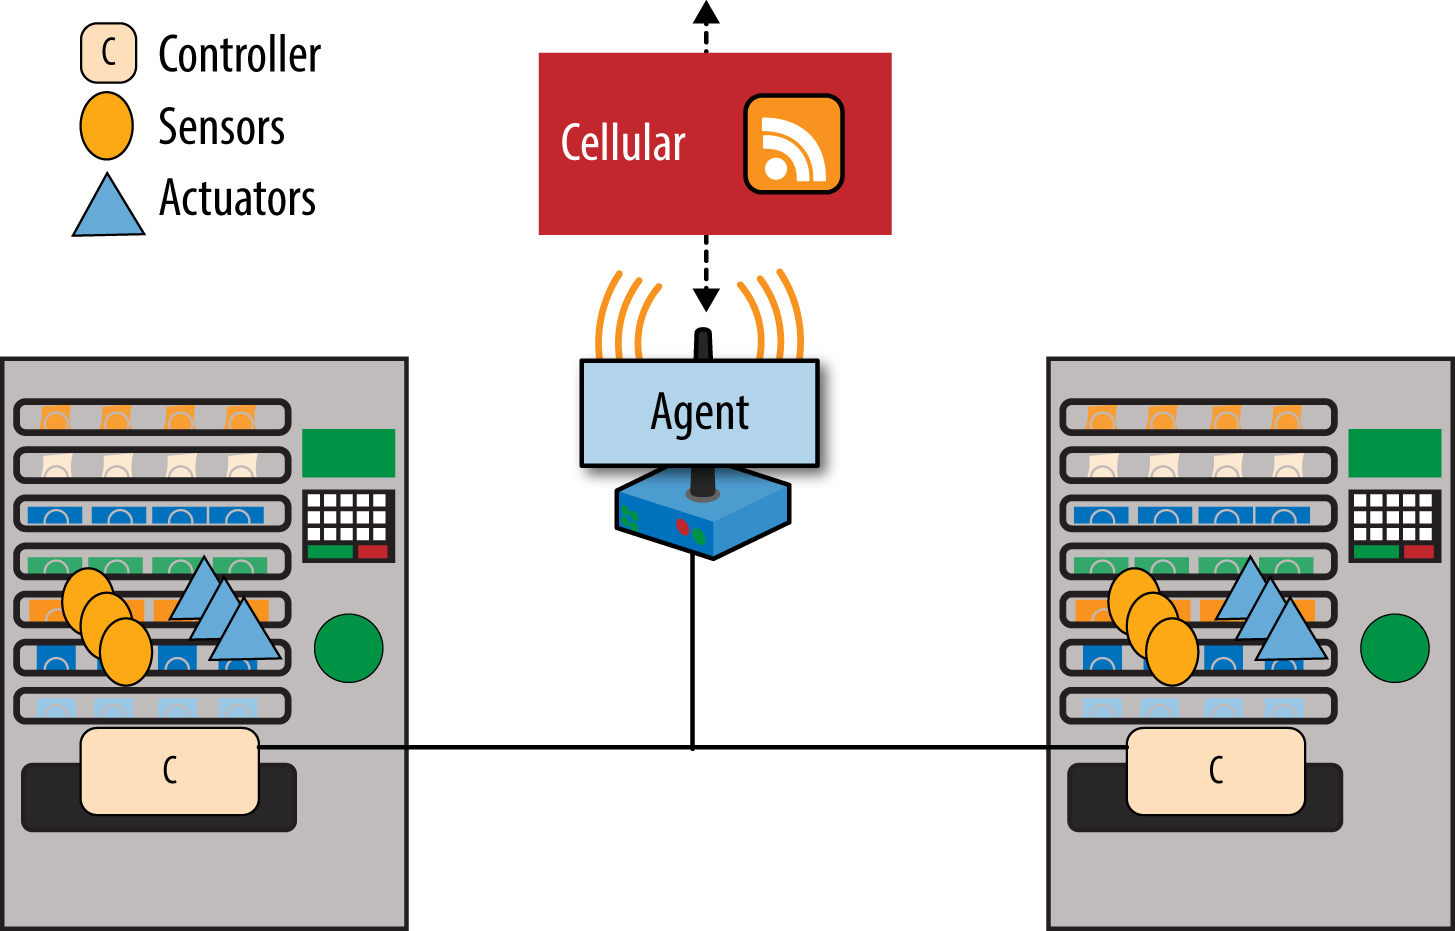 Gateway example with cellular